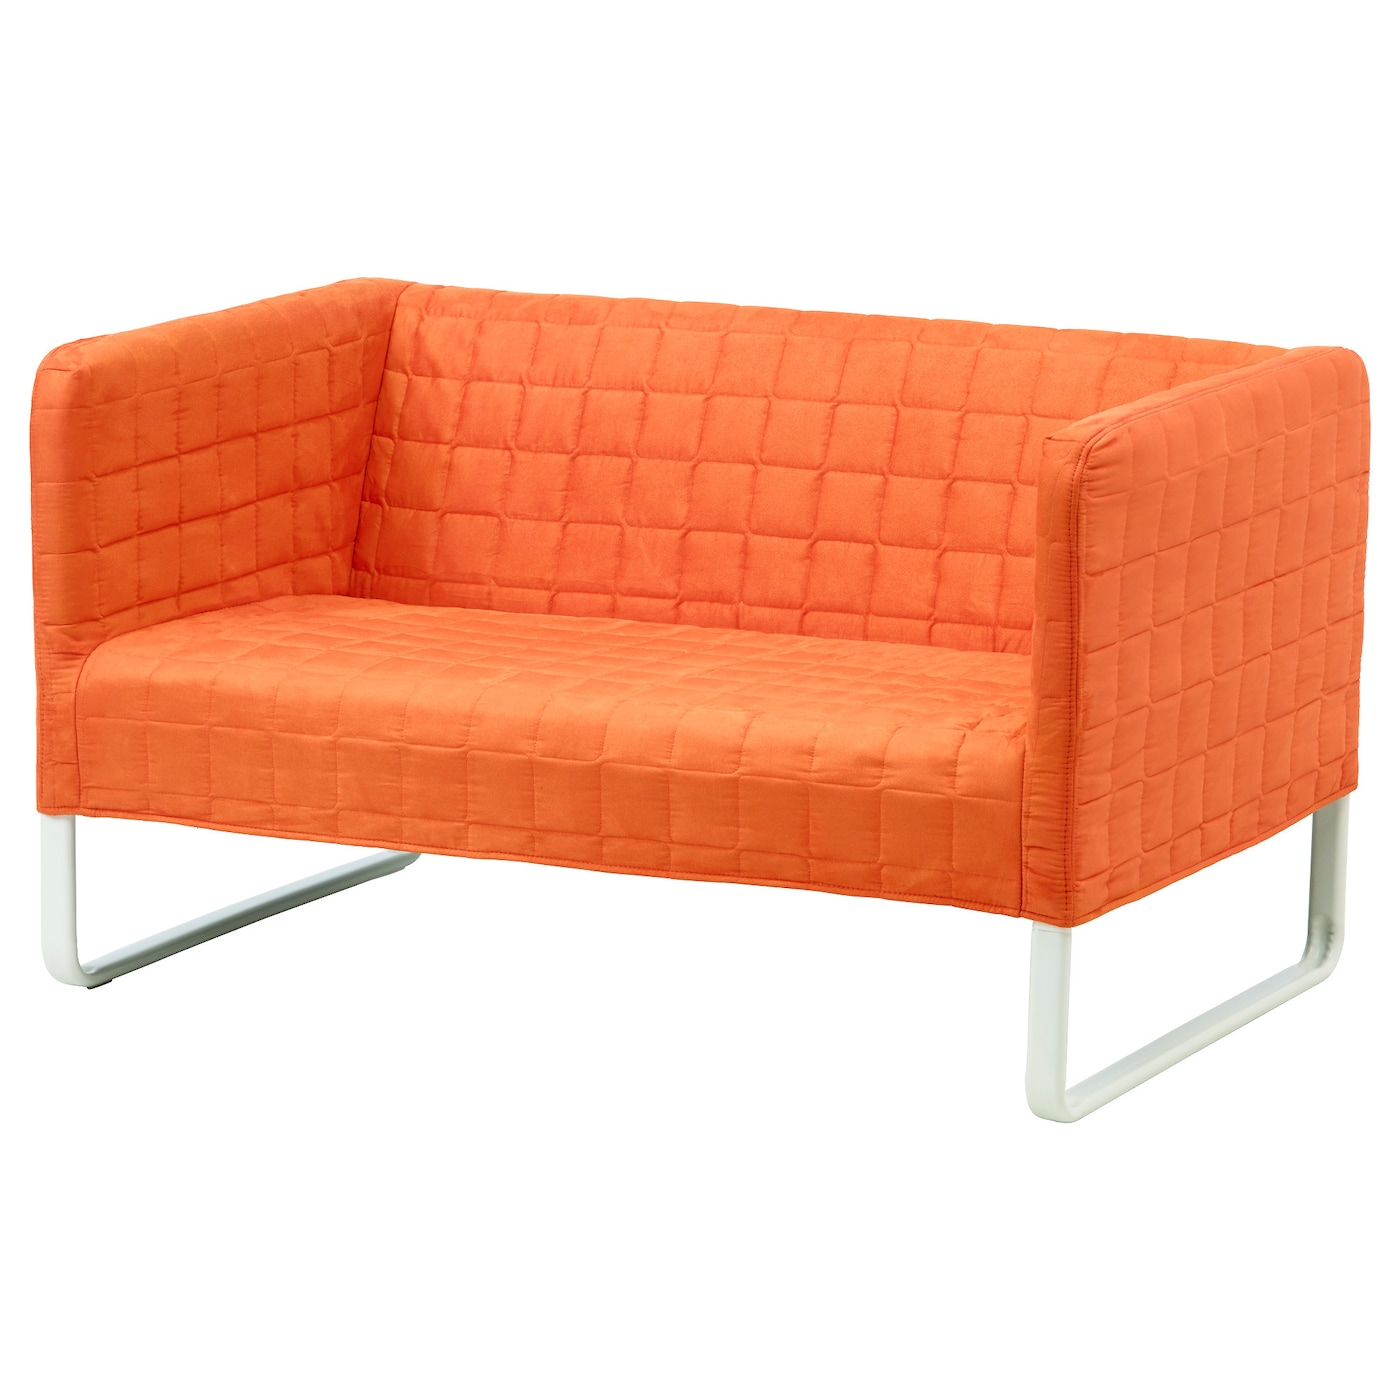 Knopparp 2 seat sofa orange ikea for Sofa cama puff barato